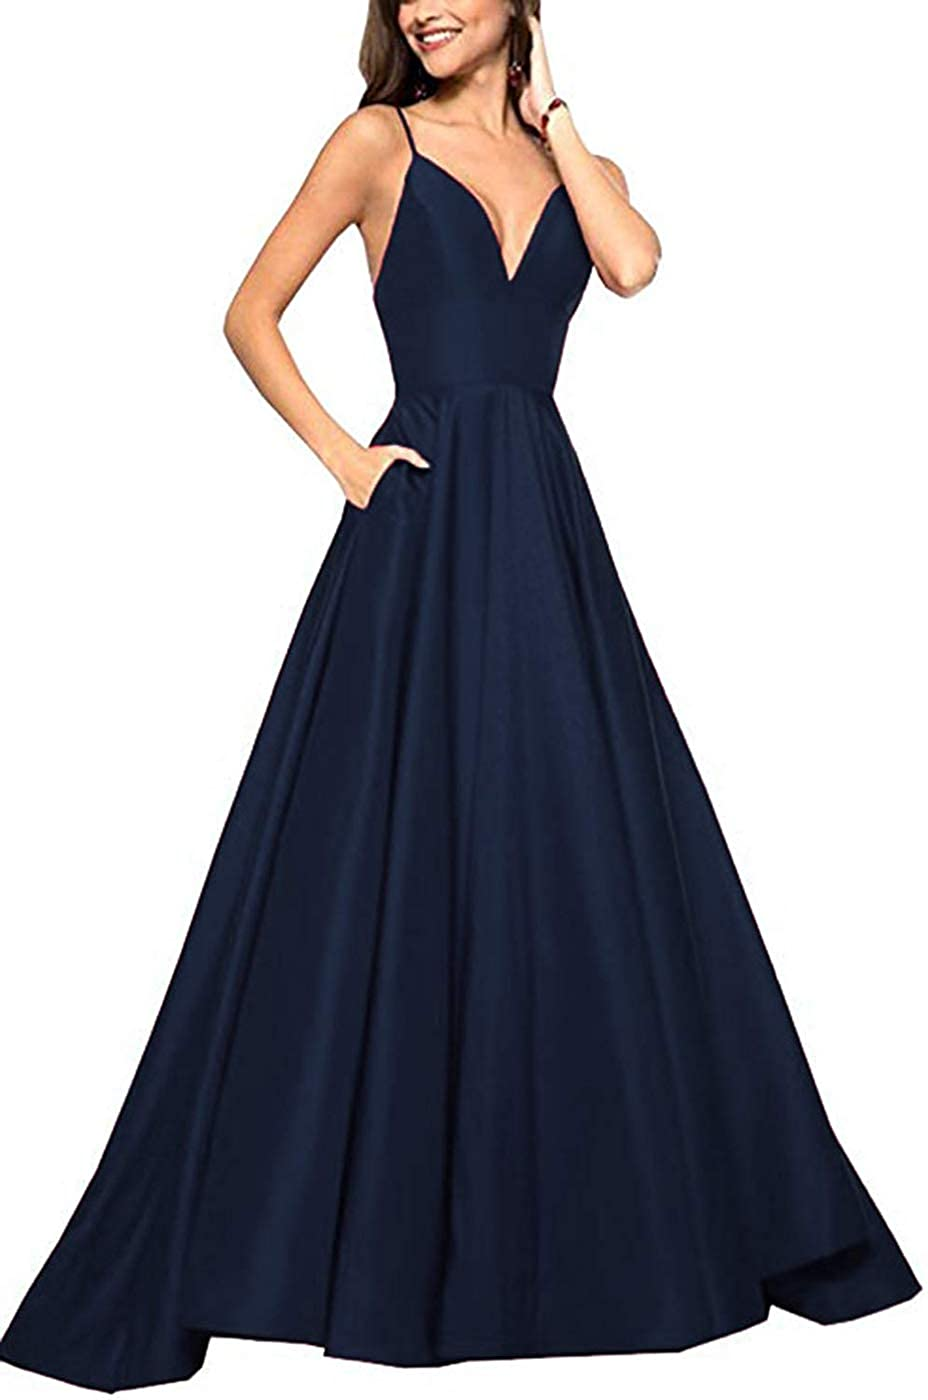 Navy bluee Tmaoomo Long Prom Dresses for Women 2019 Spaghetti Strap Evening Ball Gowns with Pockets